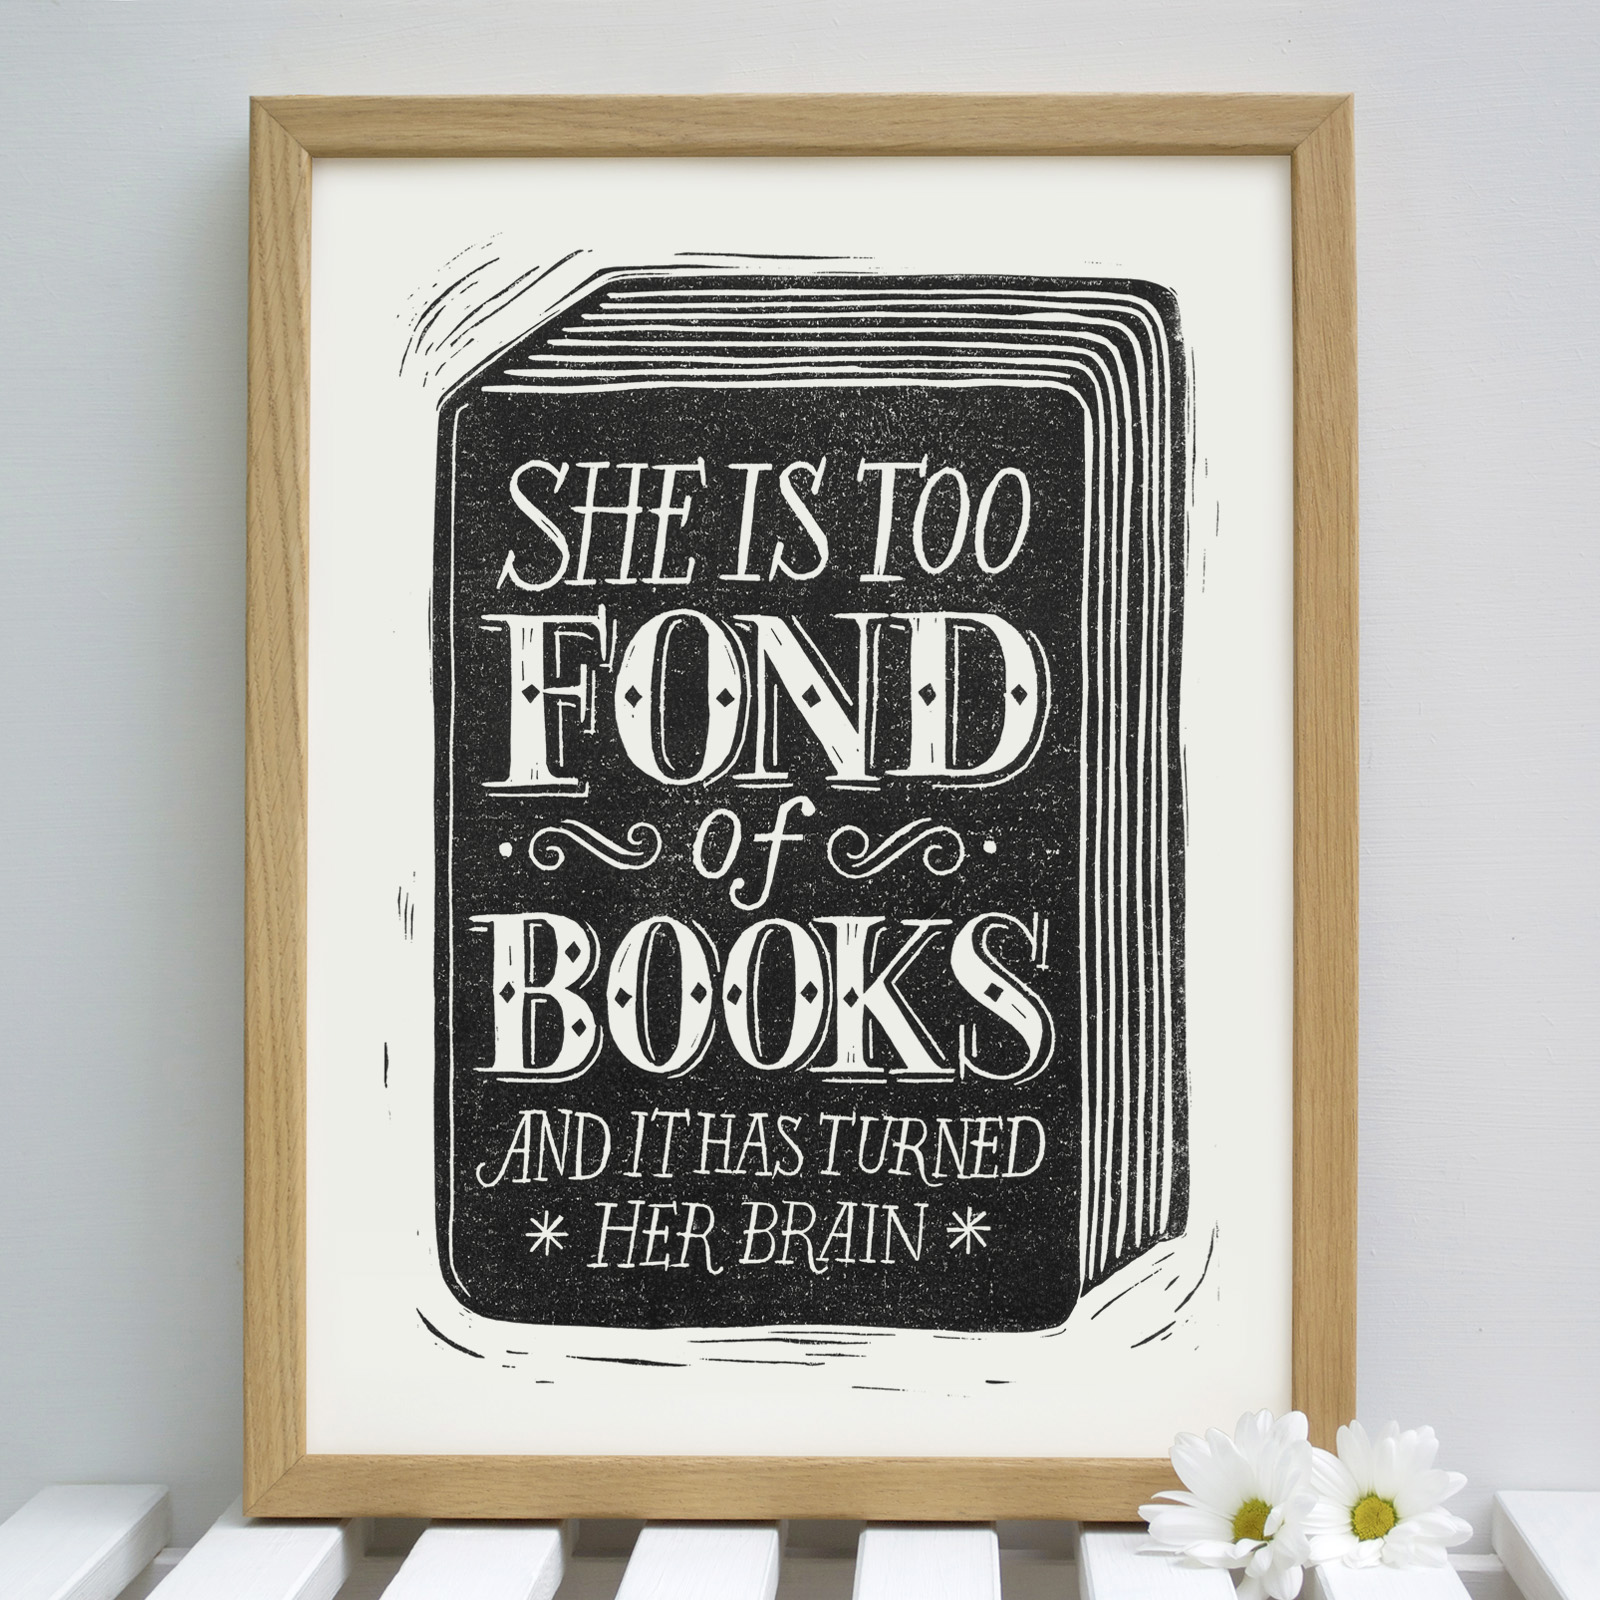 fond.of.books.original.lino.wood.frame